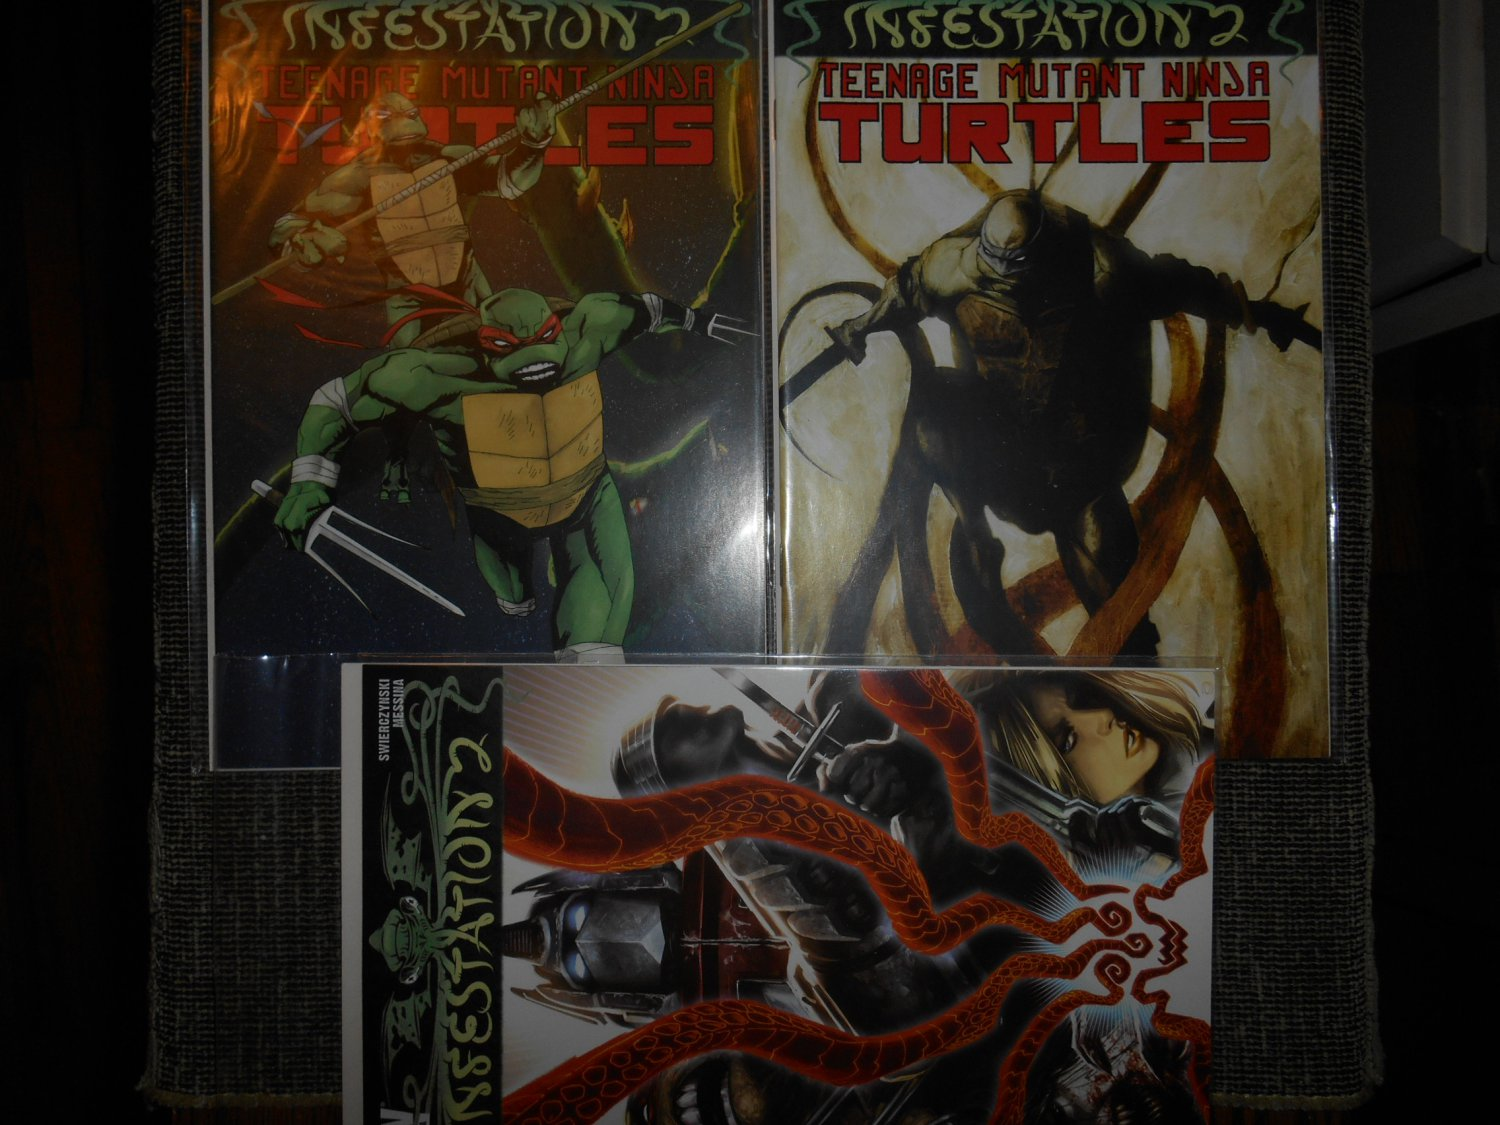 Infestation 2 Ninja Turtles Comic - David Messina - Rare - Incomplete � IDW Comics - Very Fine-